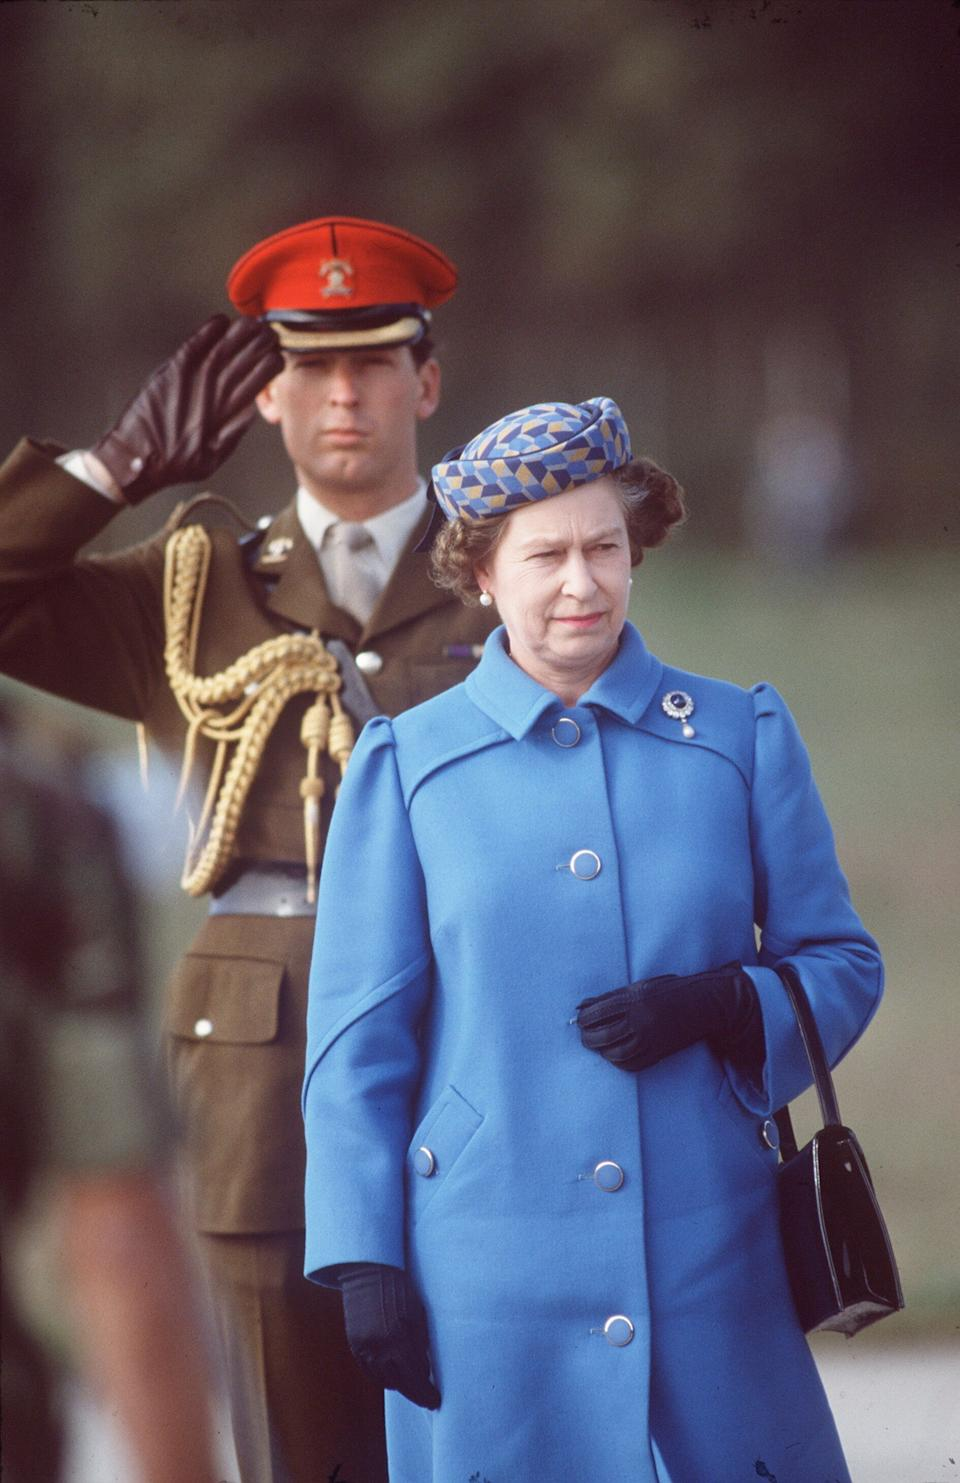 The Queen during an official tour of Portugal, pictured with Major Hugh Lindsay, The Queen's Equerry. (Photo by Tim Graham Photo Library via Getty Images) (Photo: Tim Graham via Getty Images)